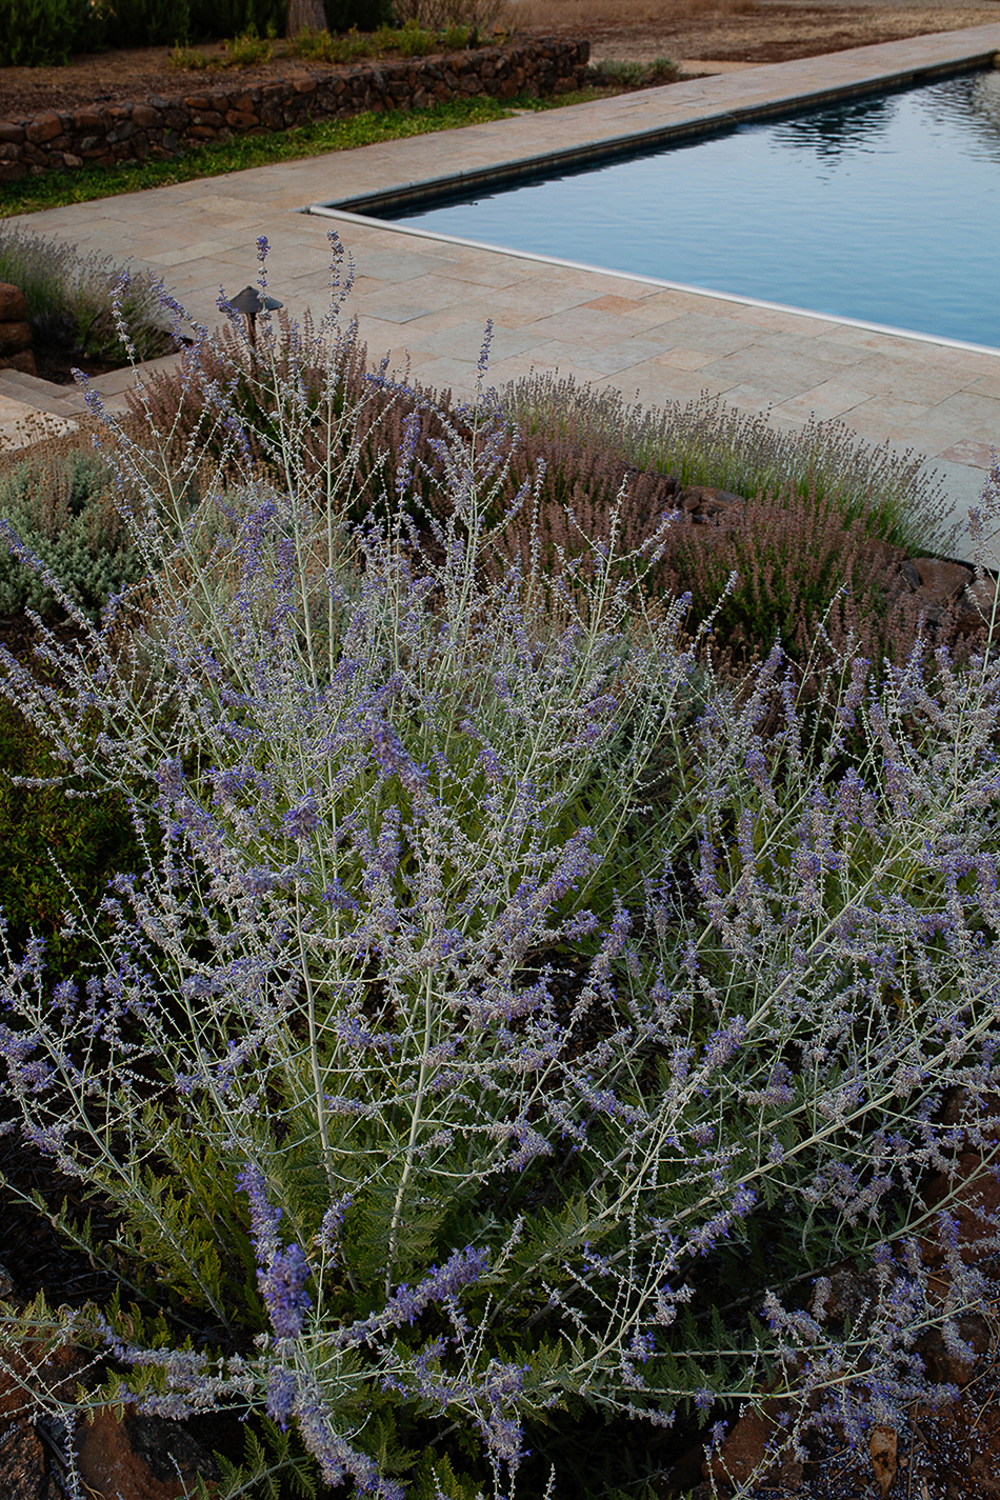 Drought friendly landscape design photography. French lavender at poolside in Sonoma residence.